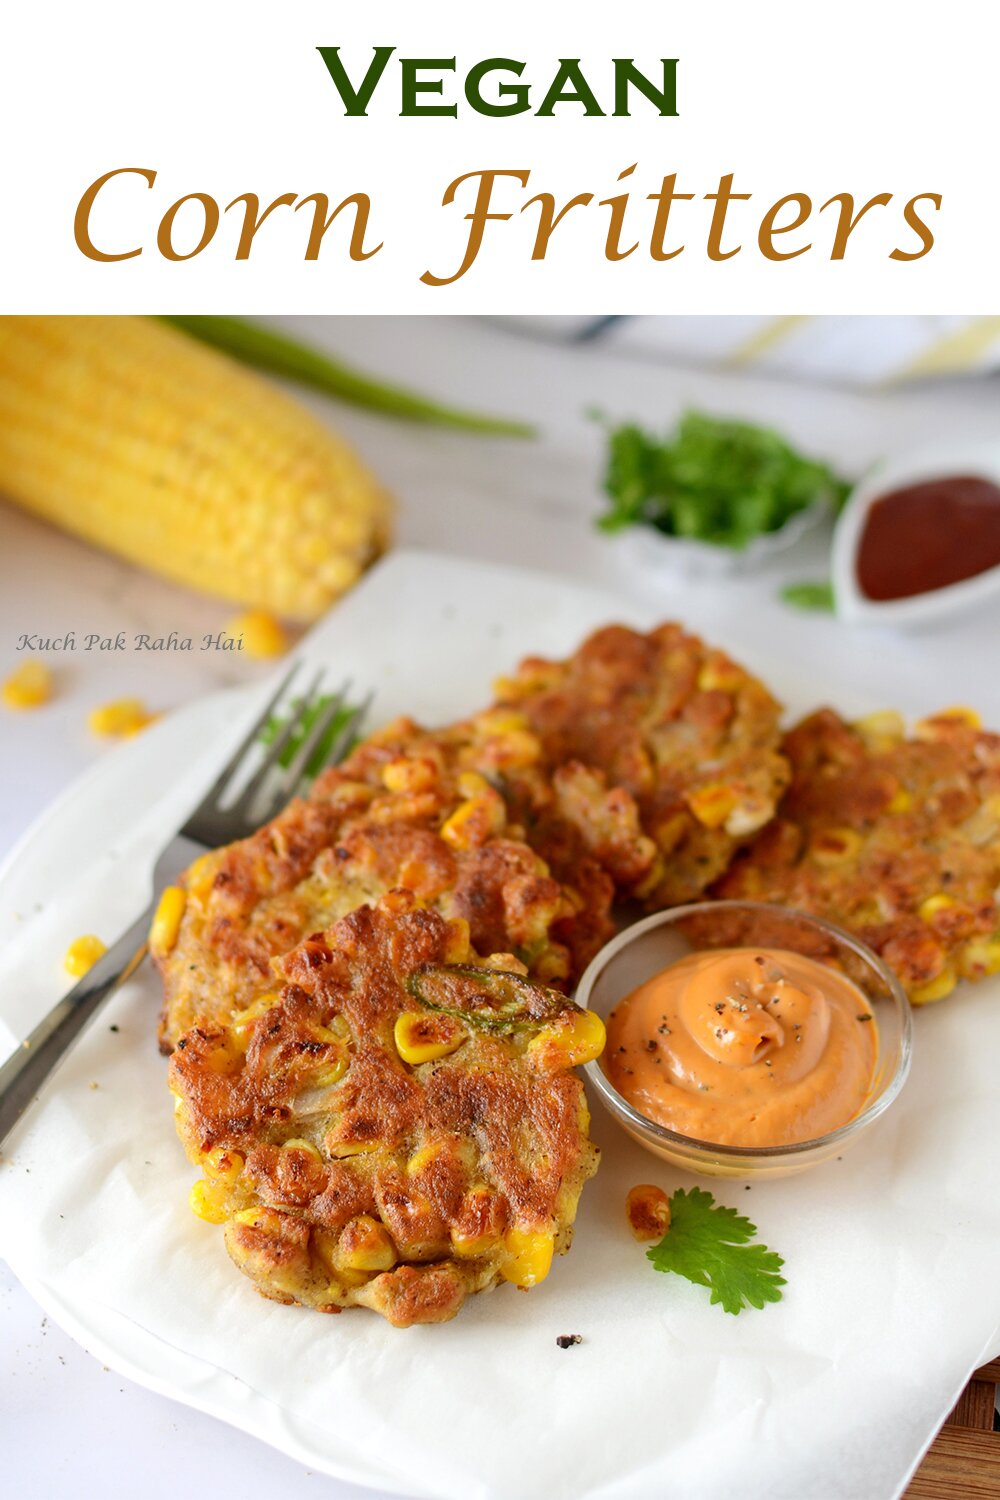 Vegan Crispy Corn Fritters Recipe without eggs